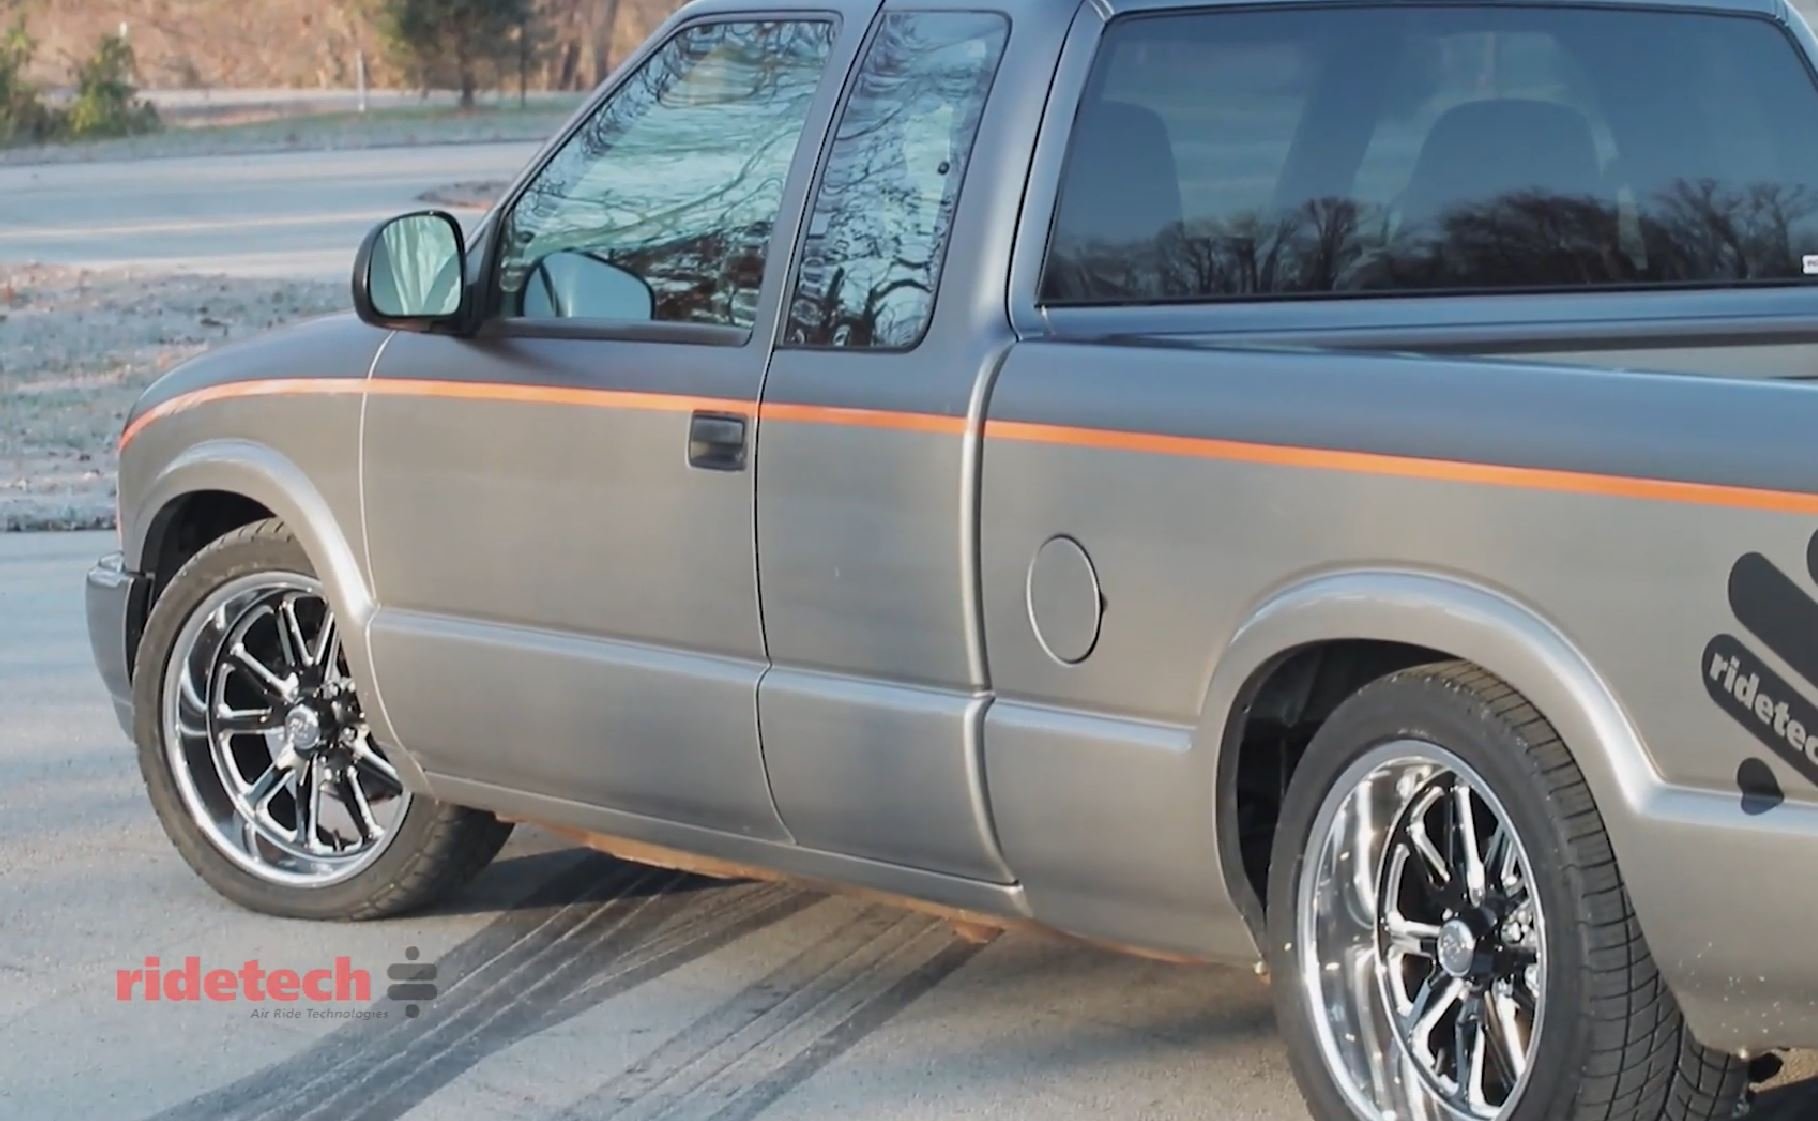 BangShift com Ridetech's New S10 Coil-Over Suspension System